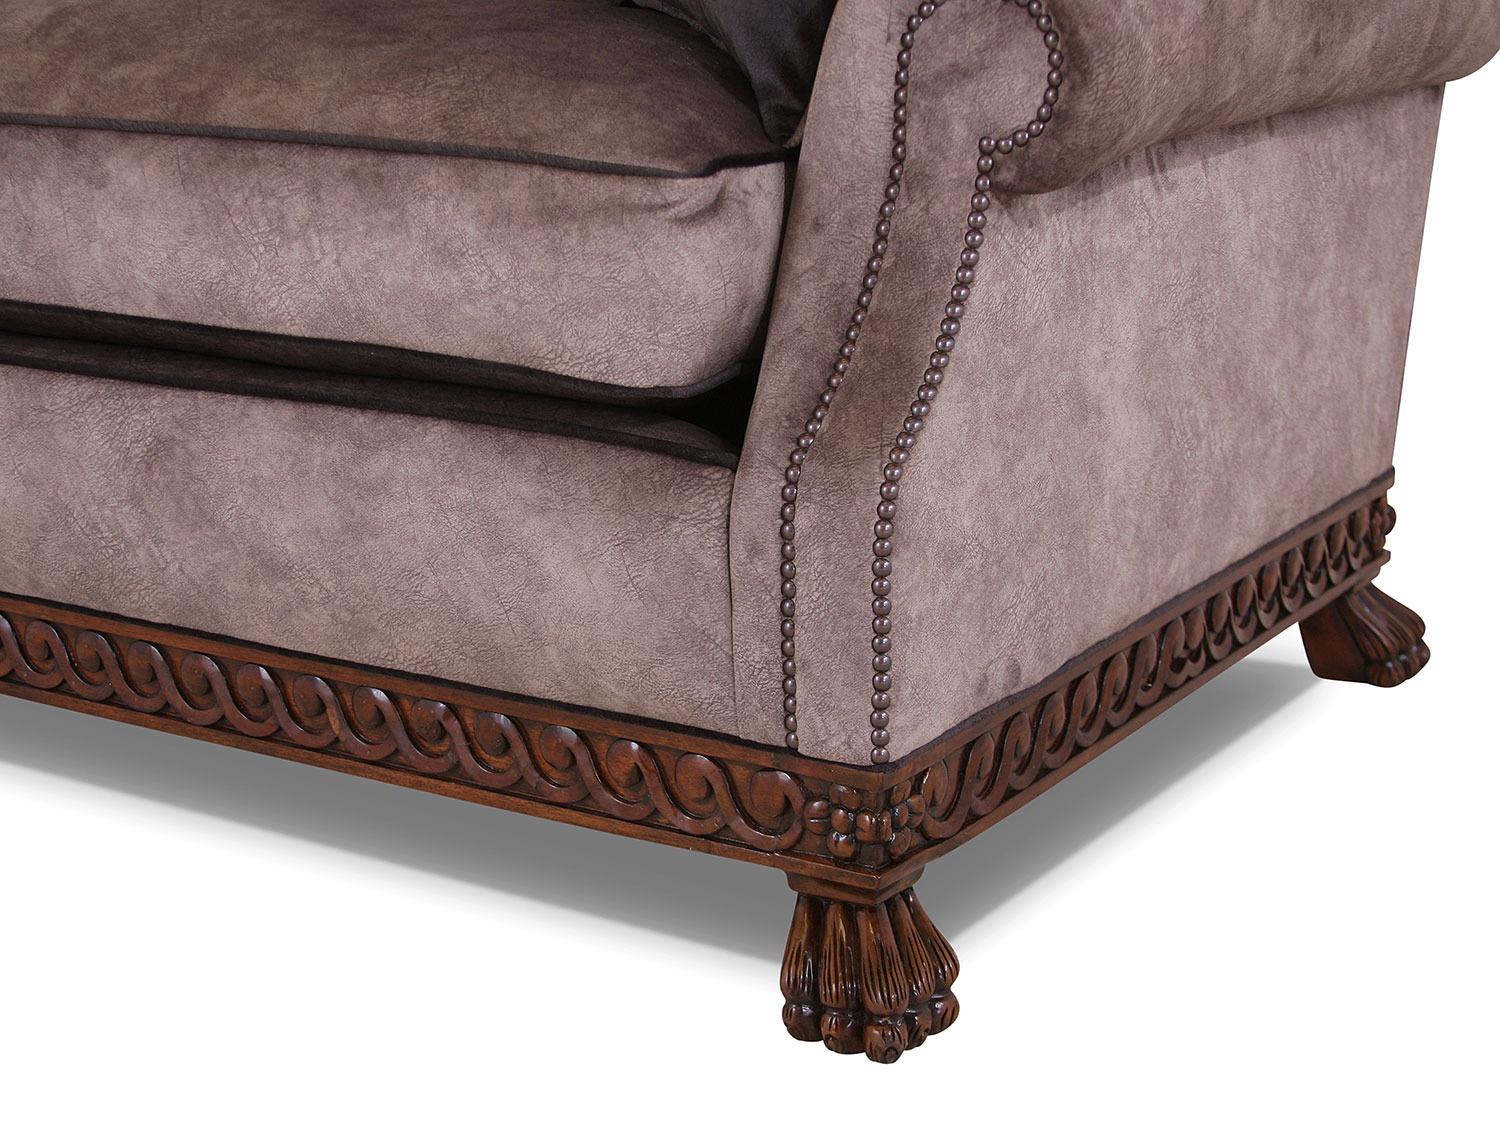 Dartington full back sofa in Walbrook Taupe